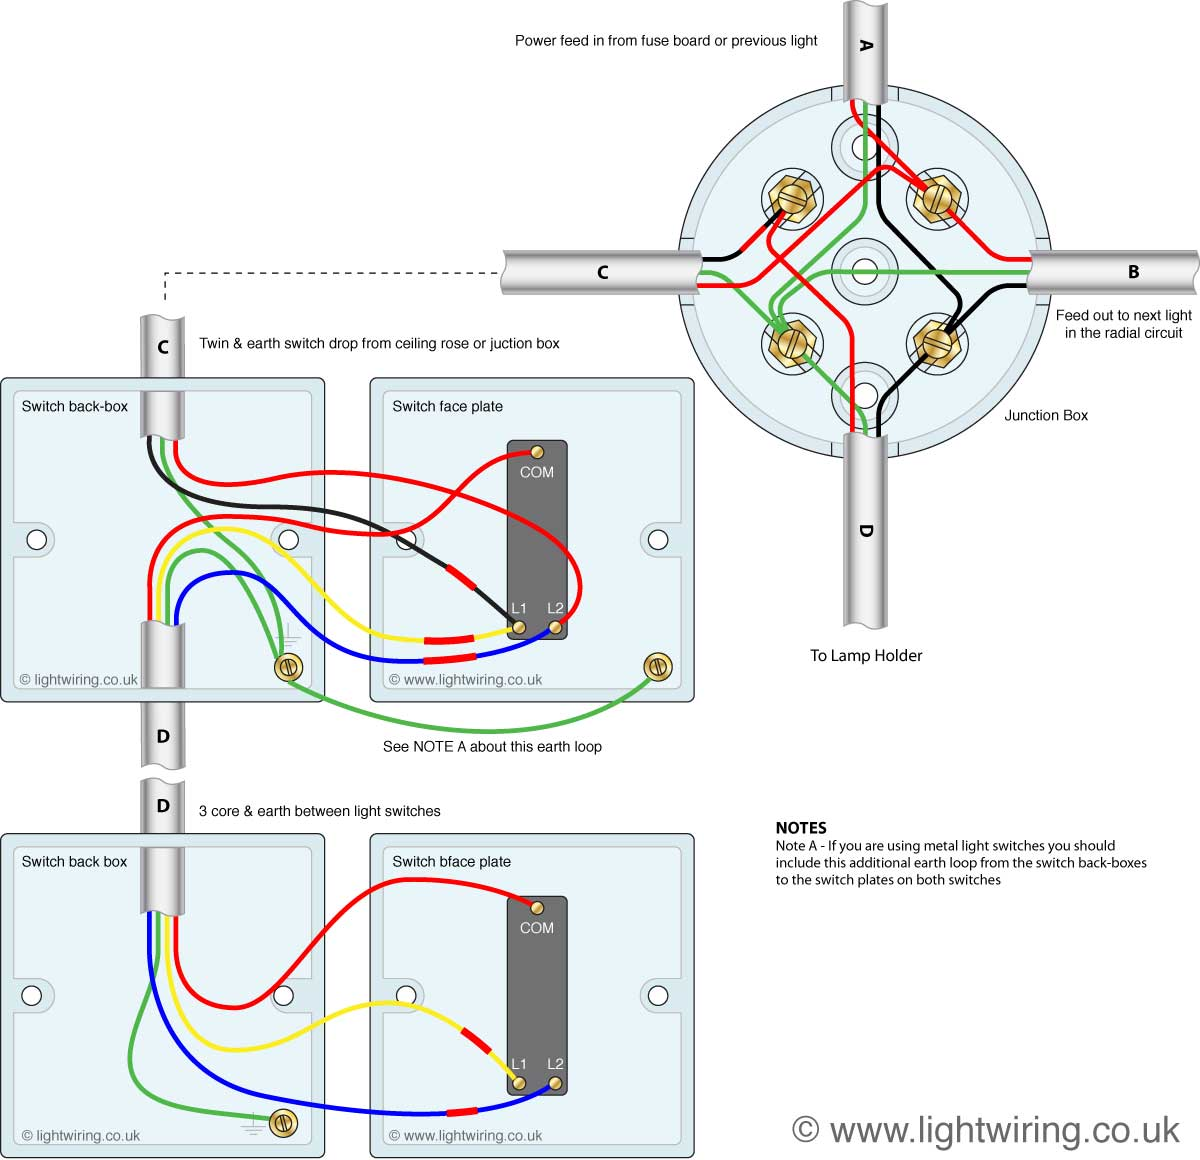 3 way switching from junction box 2 way switch (3 wire system, old cable colours) light wiring wiring diagrams for lighting circuits at eliteediting.co